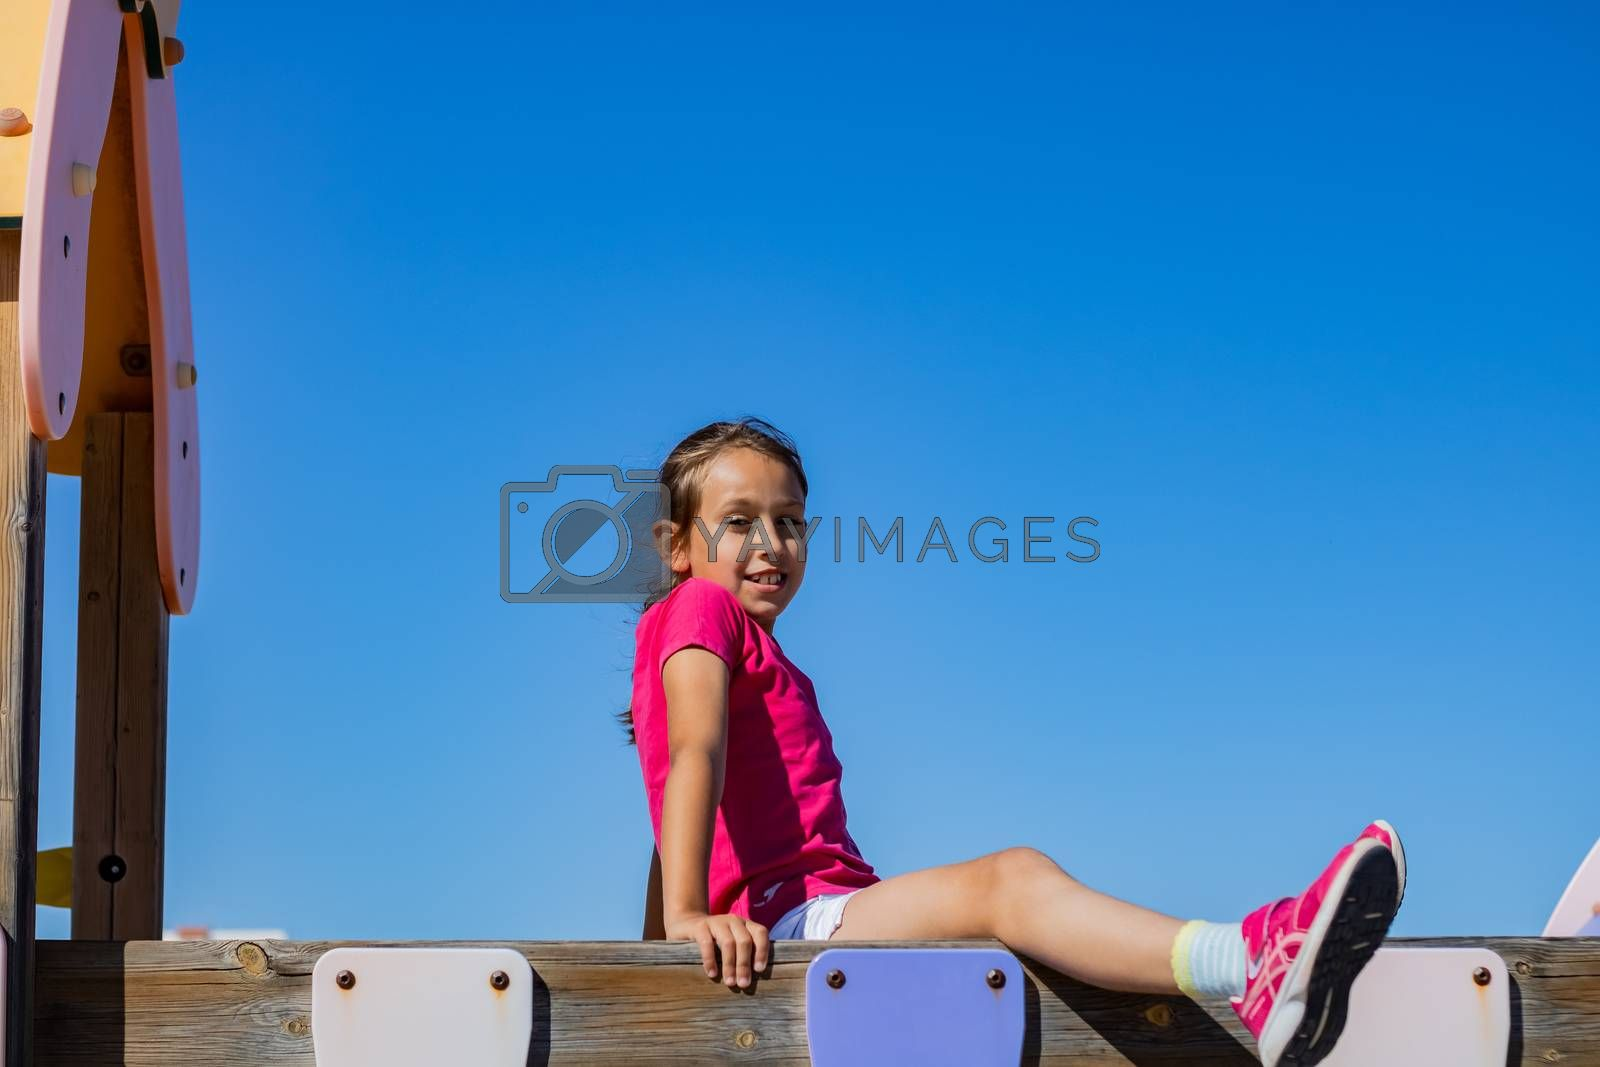 Little girl playing in a playground by Barriolo82